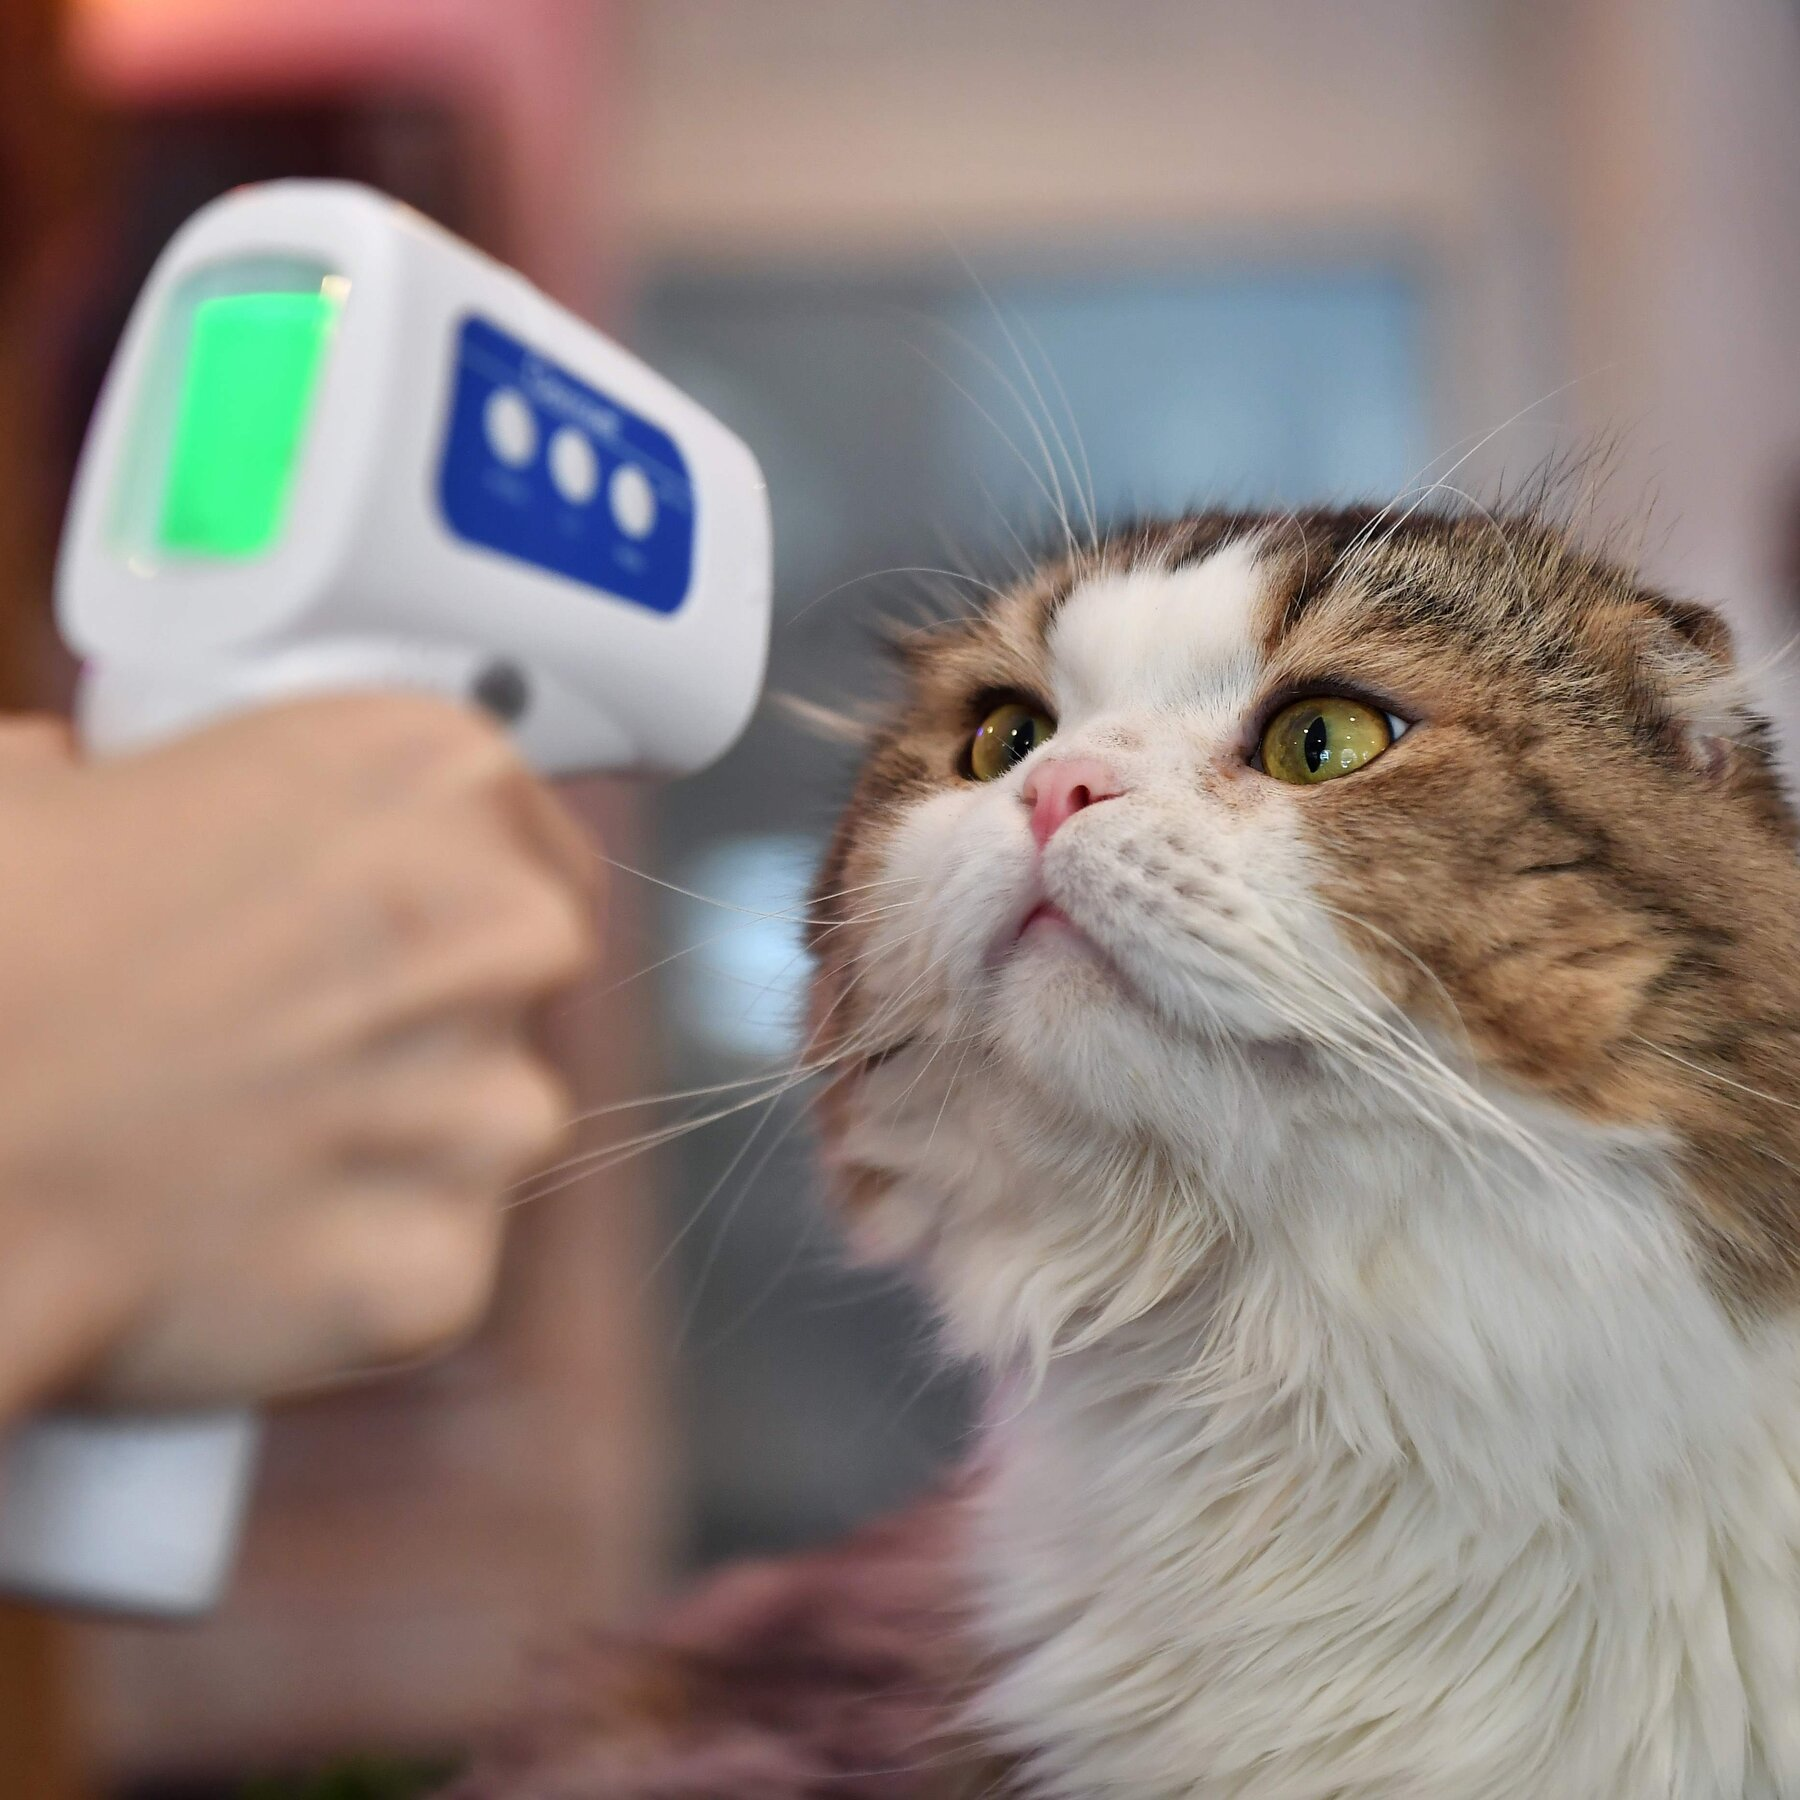 Cats Are Better Than Dogs (at Catching the Coronavirus) - The New York Times